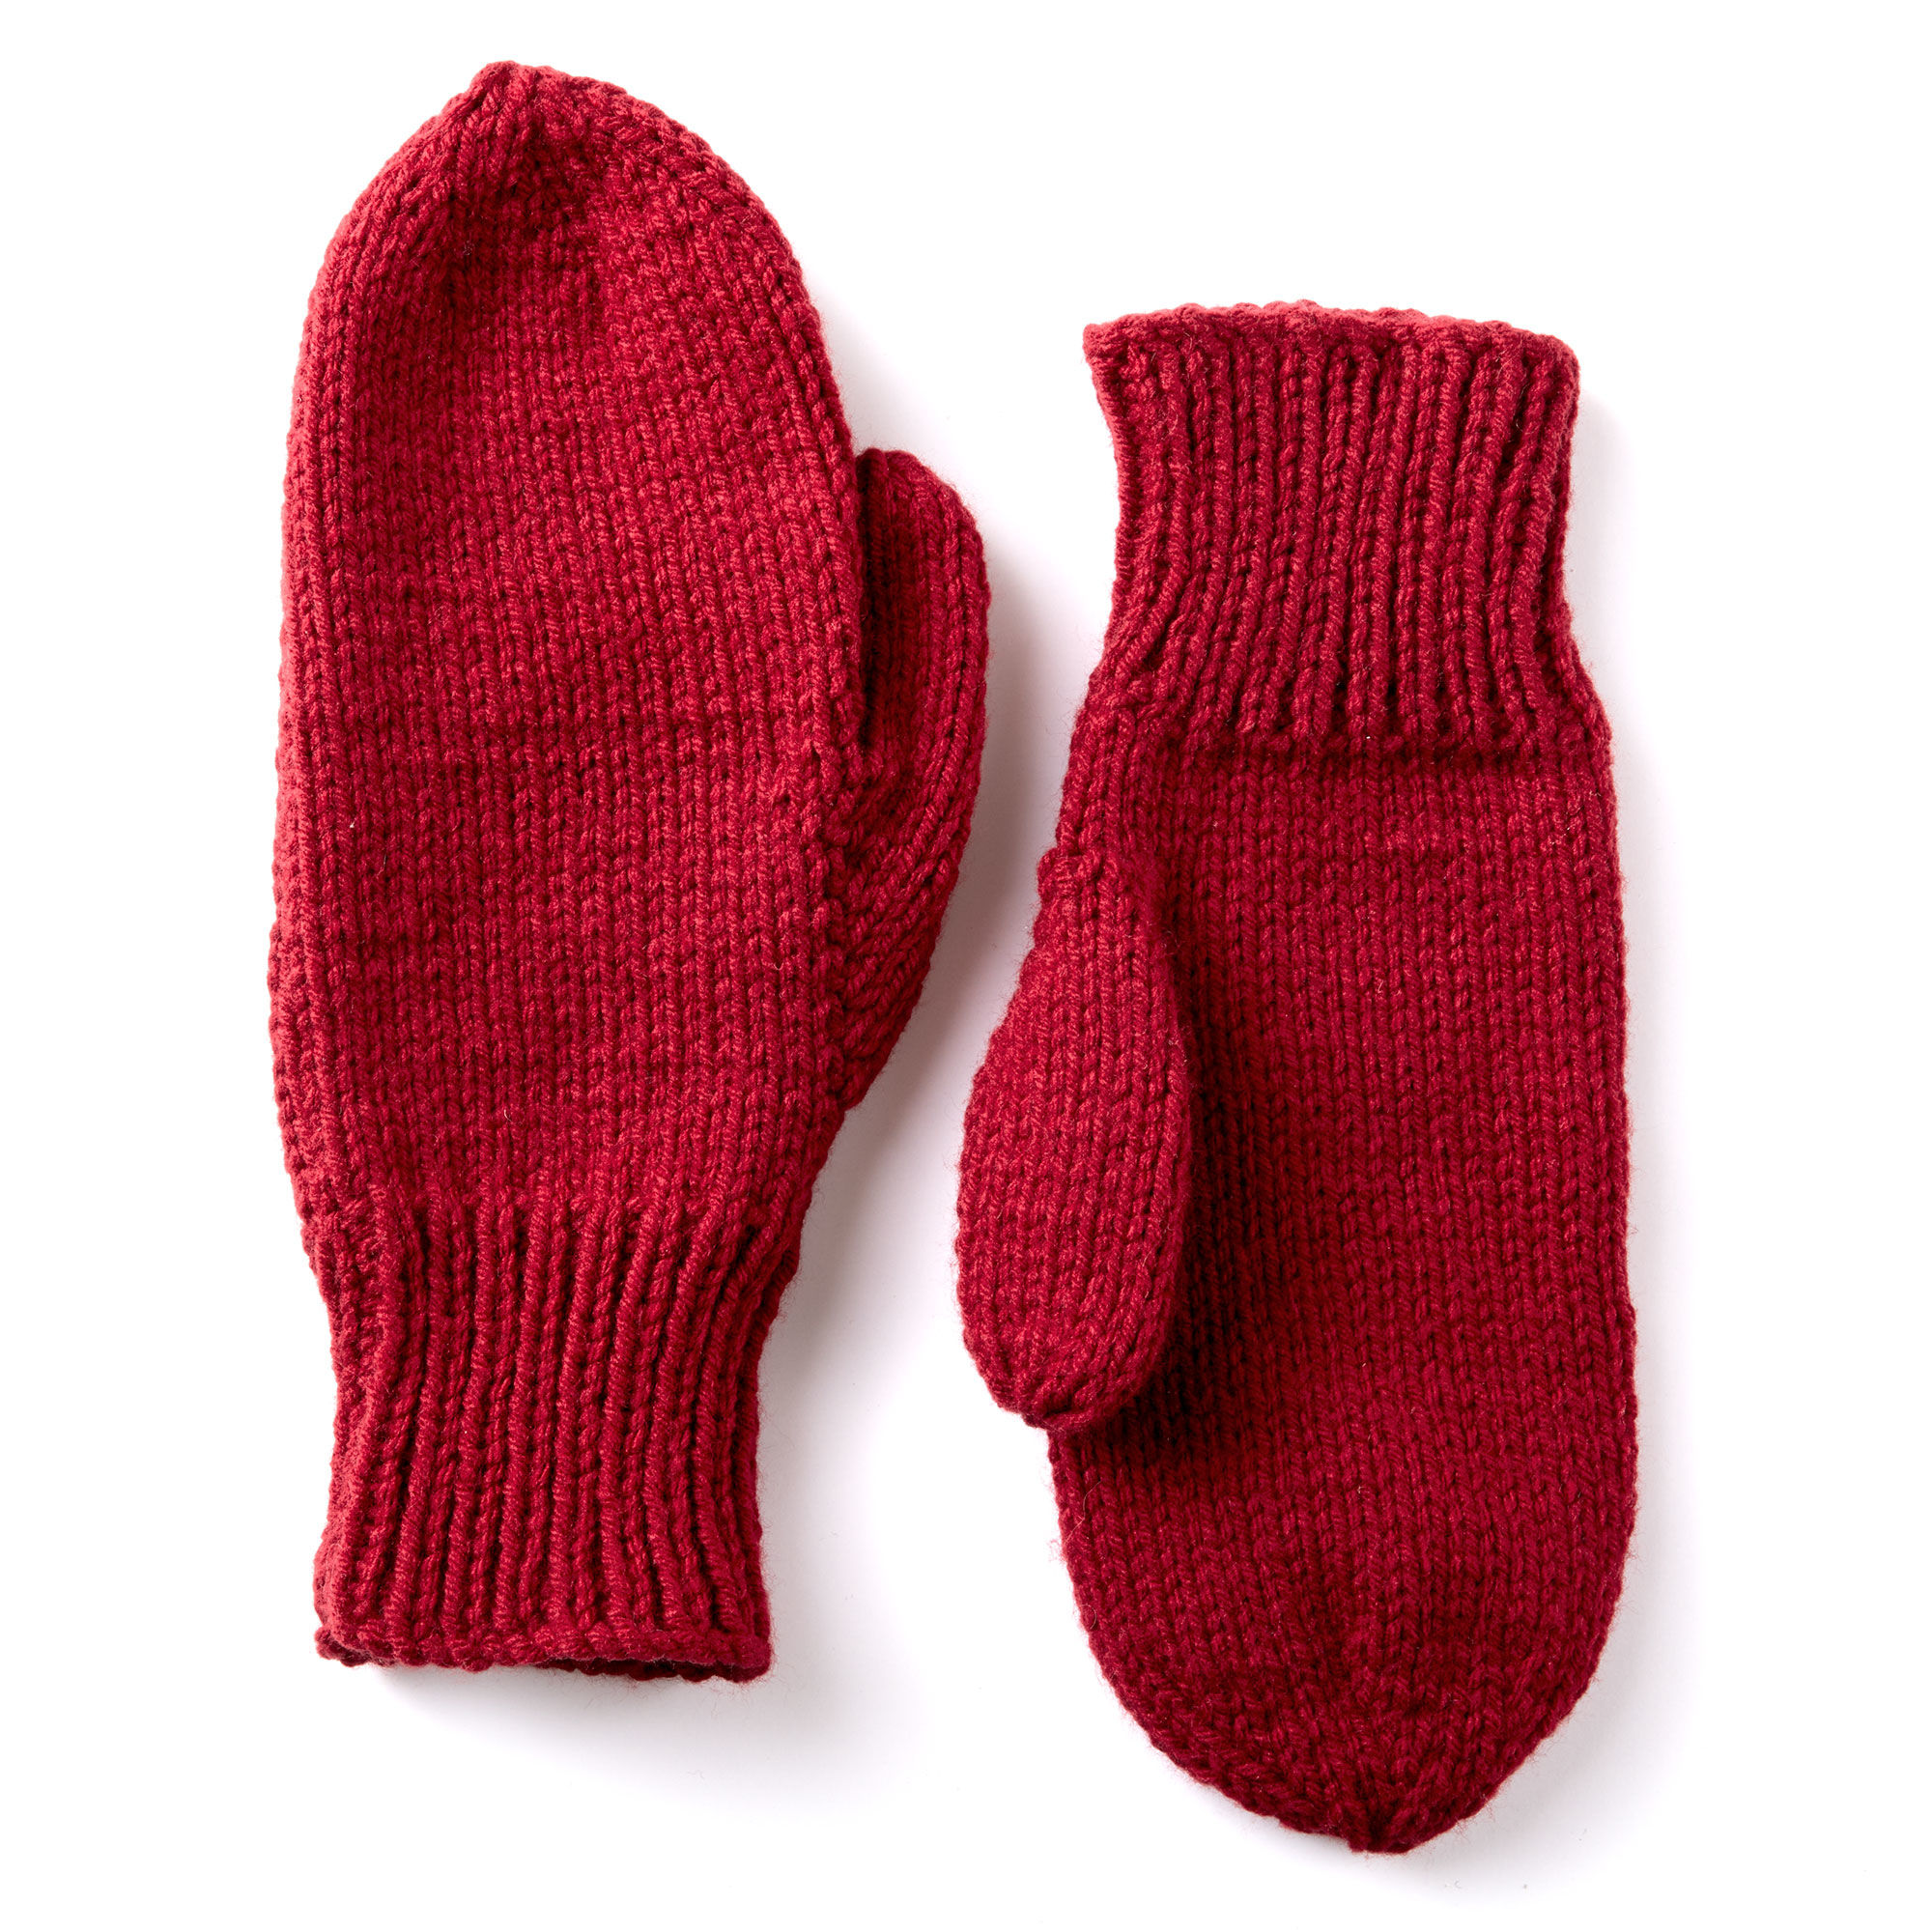 Knit Mittens for winter season